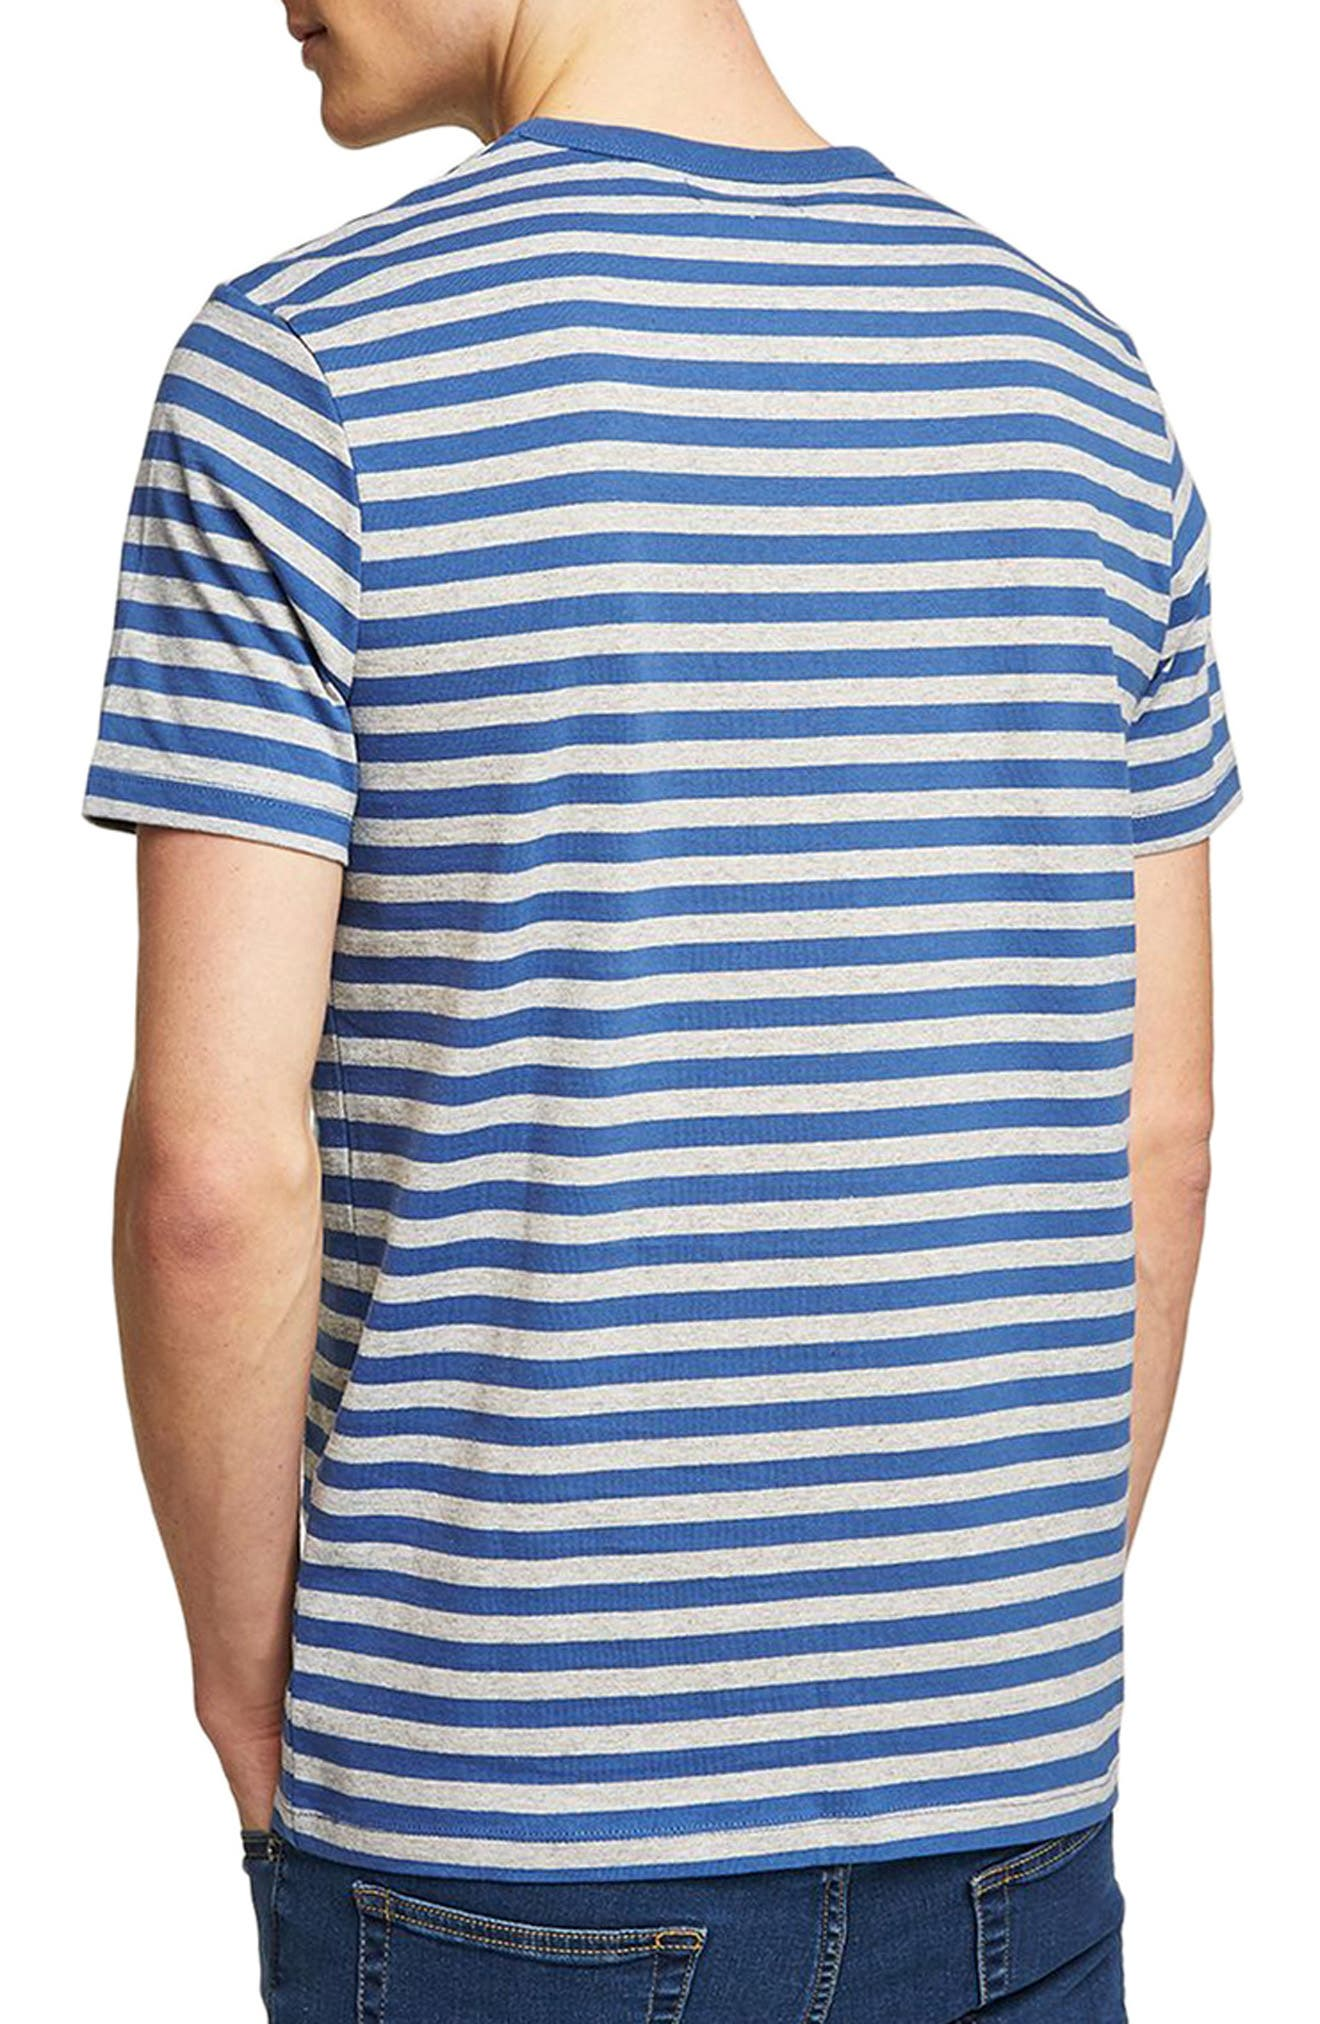 Slim Fit Stripe T-Shirt,                             Alternate thumbnail 2, color,                             Mid Blue Multi